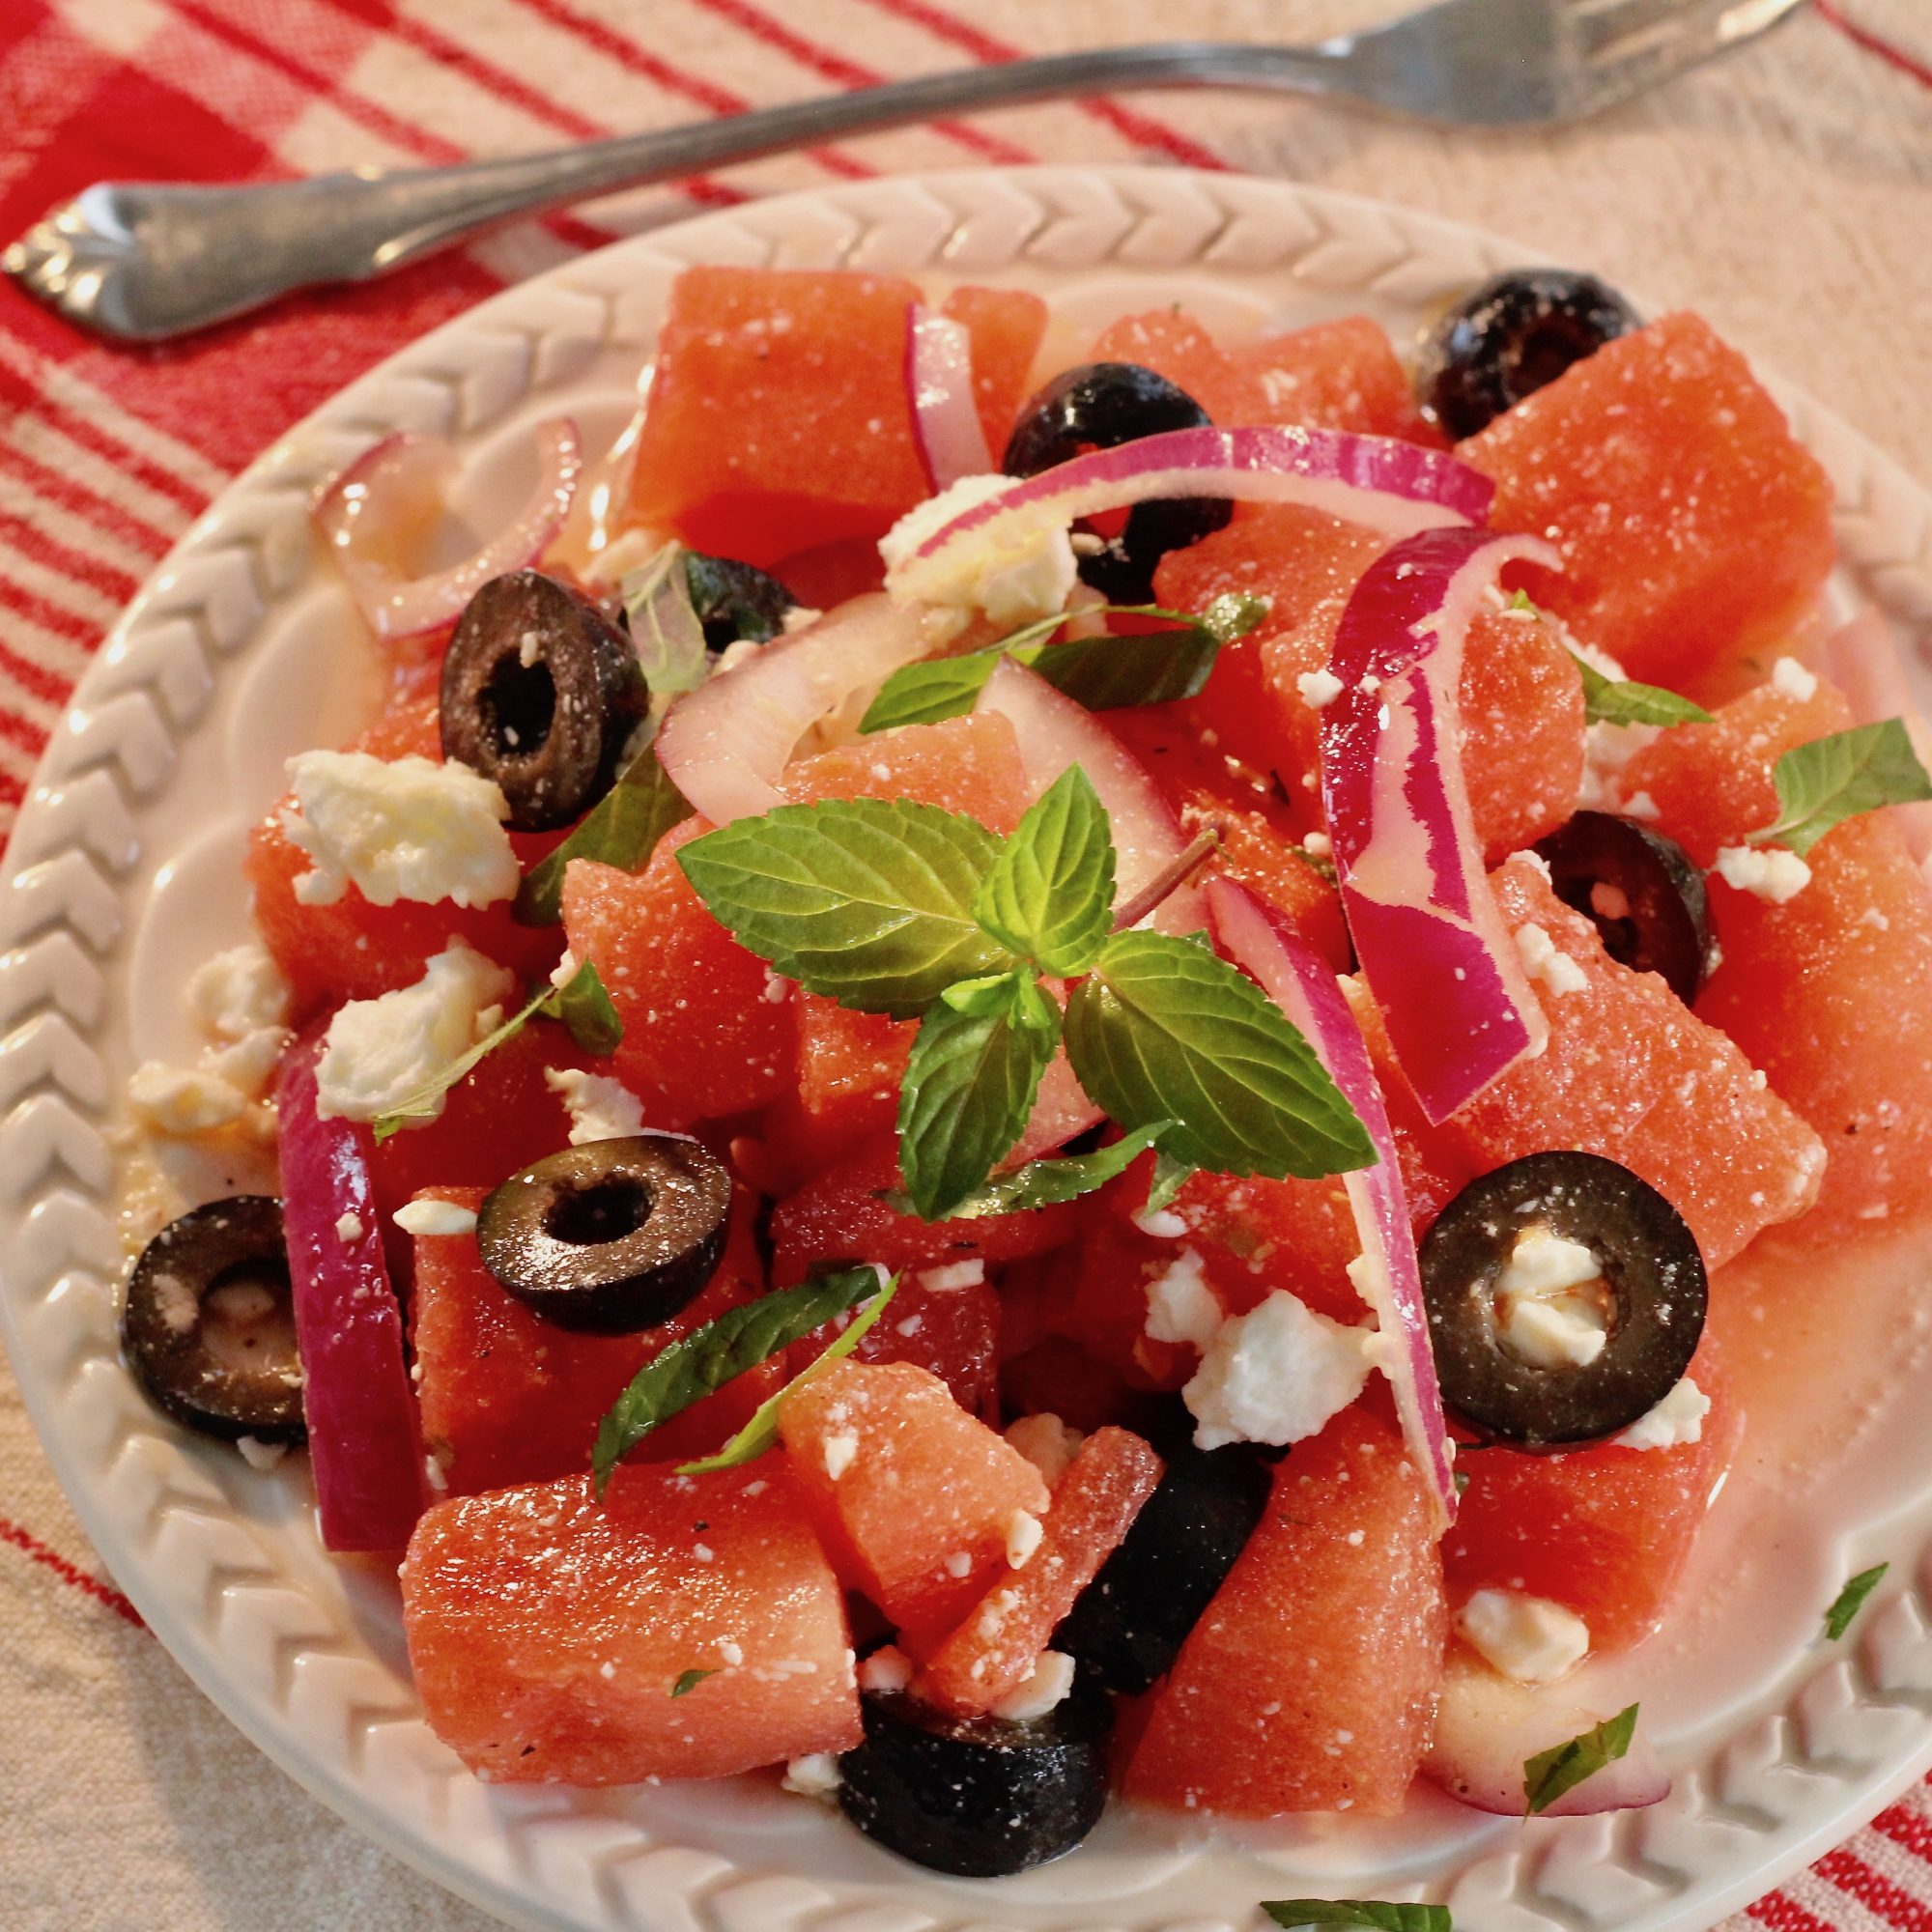 Watermelon Salad with Mint Dressing